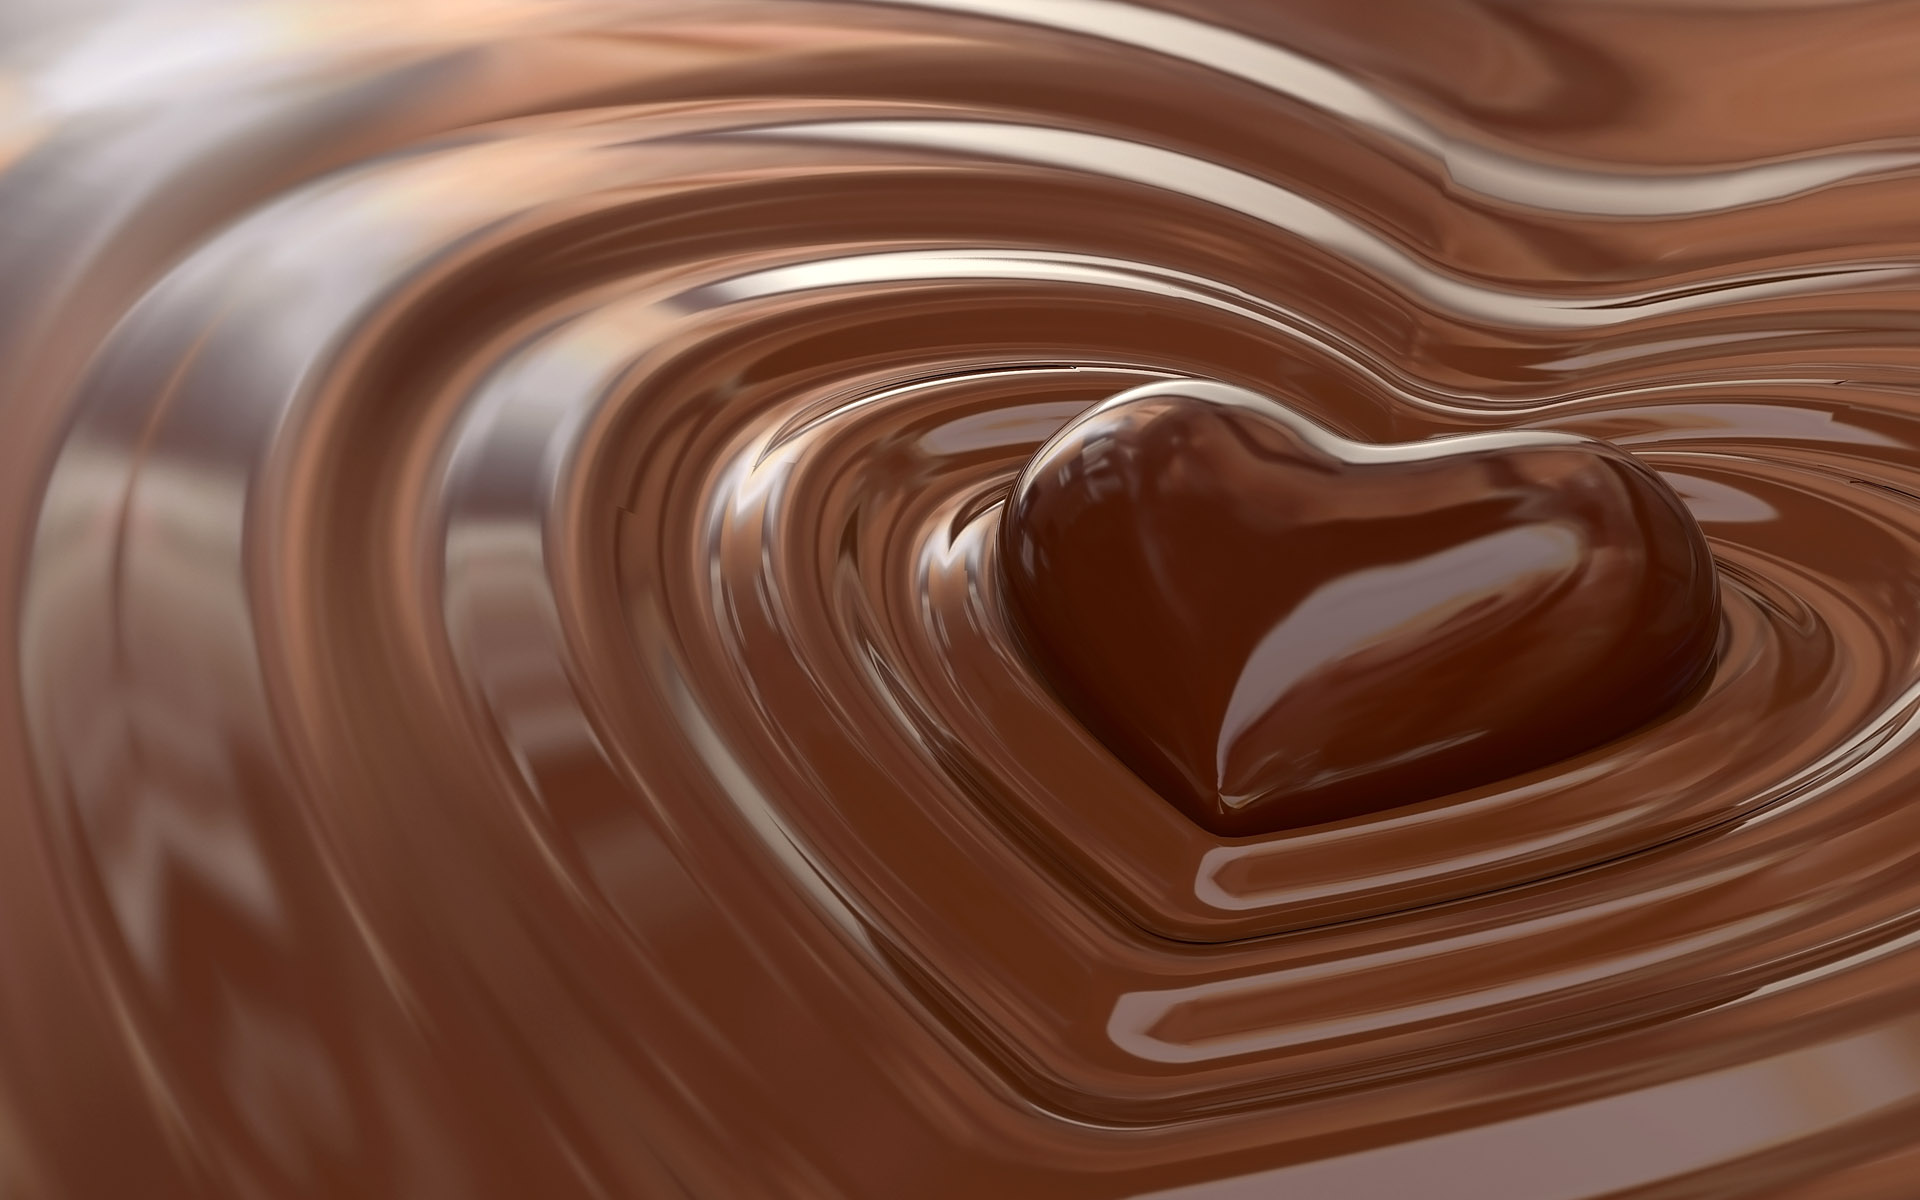 chocolate-day-2014-quotes-for-girlfriend-boyfriend-1393853525